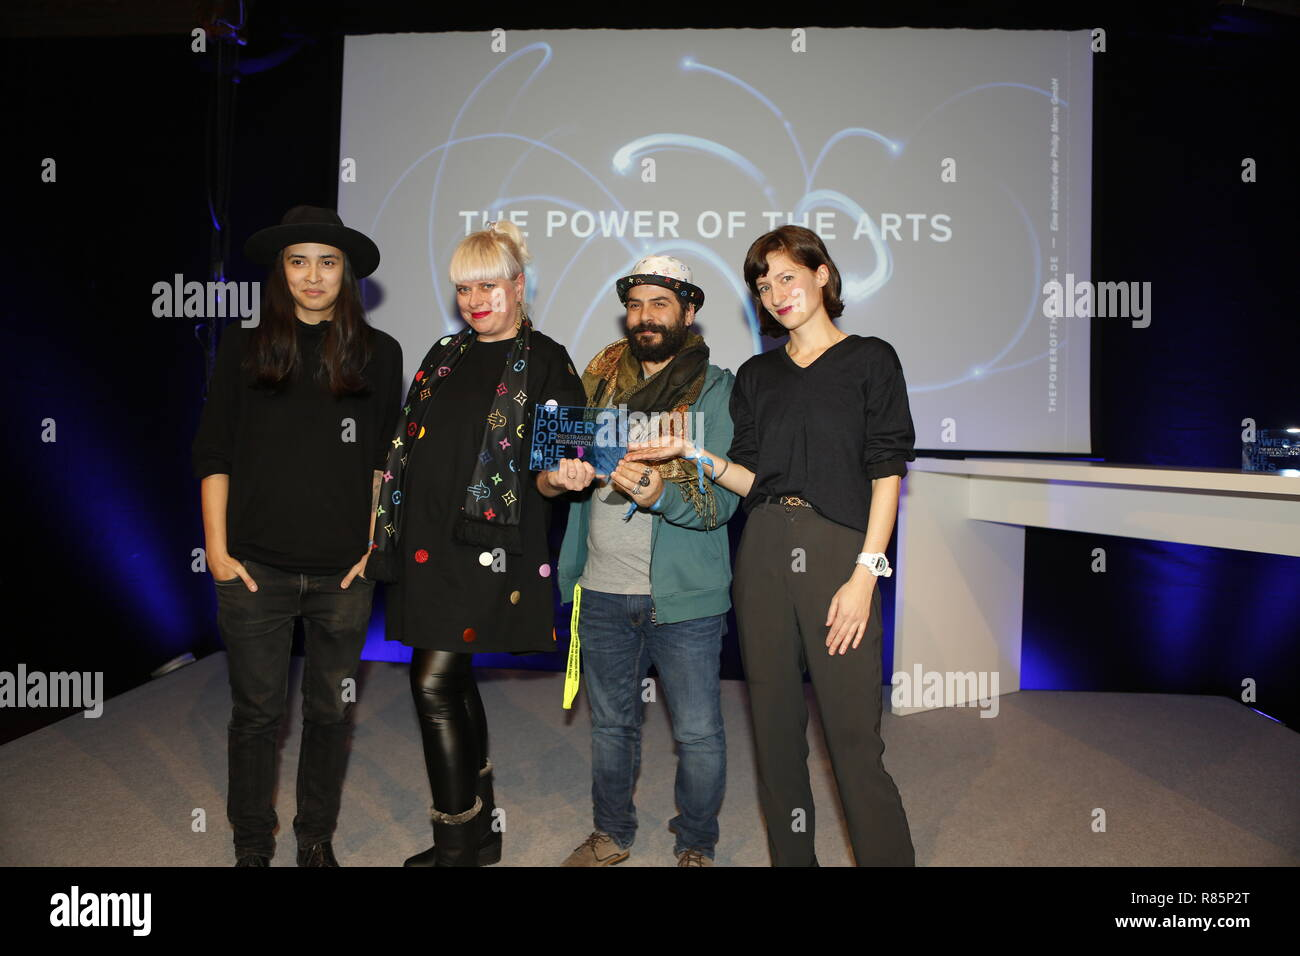 Berlin, Germany. 12th Dec 2018. Diana Kinnert (left) and the winners Migrantpolitan (Hamburg). On the 12th of December the solemn award ceremony of the initiative 'The Power of the Arts' takes place for the second time in Berlin. With 200,000 euros it is the highest endowed prize for cultural participation in Germany.  Migrantpolitan on Kampnagel and the literary portal Weiter Schreiben. Credit: SAO Struck/Alamy Live News - Stock Image